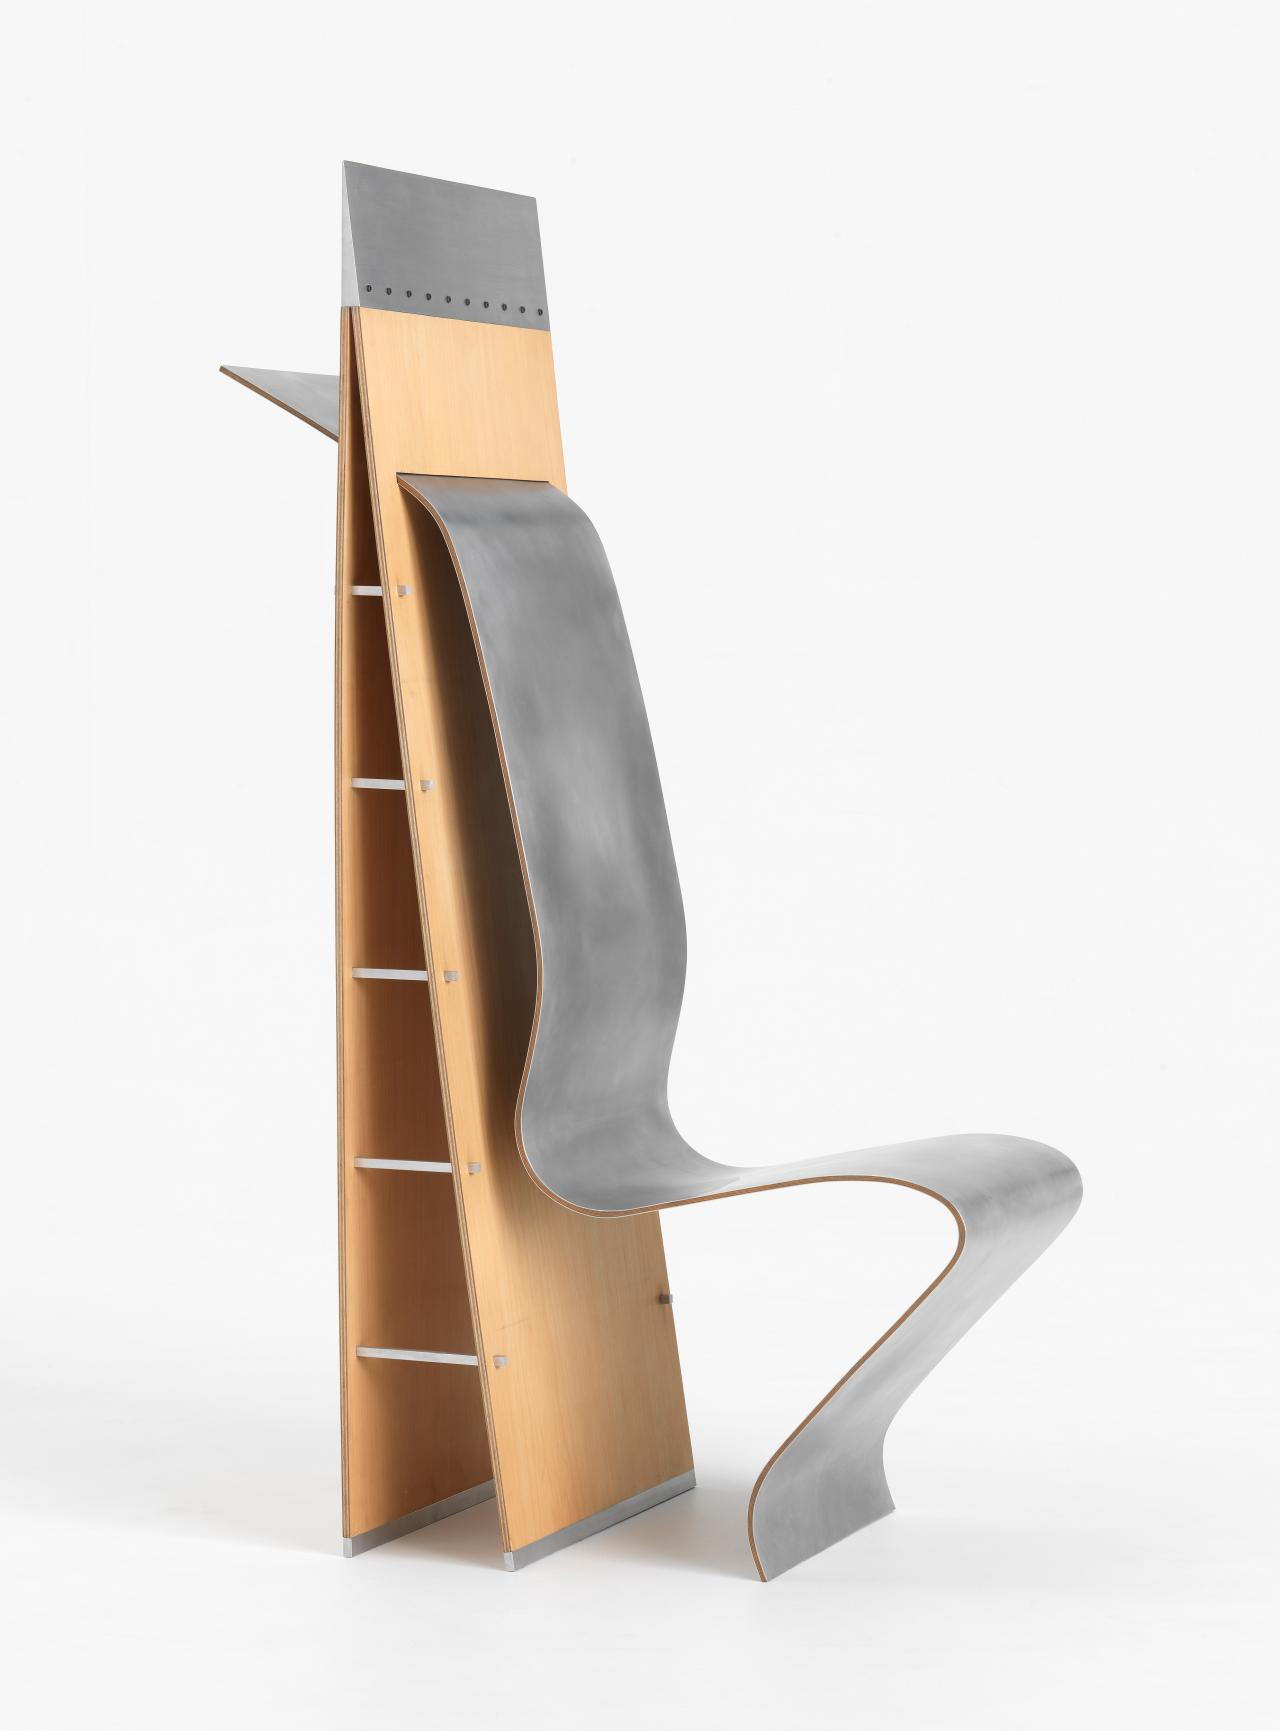 Timber and aluminium chair